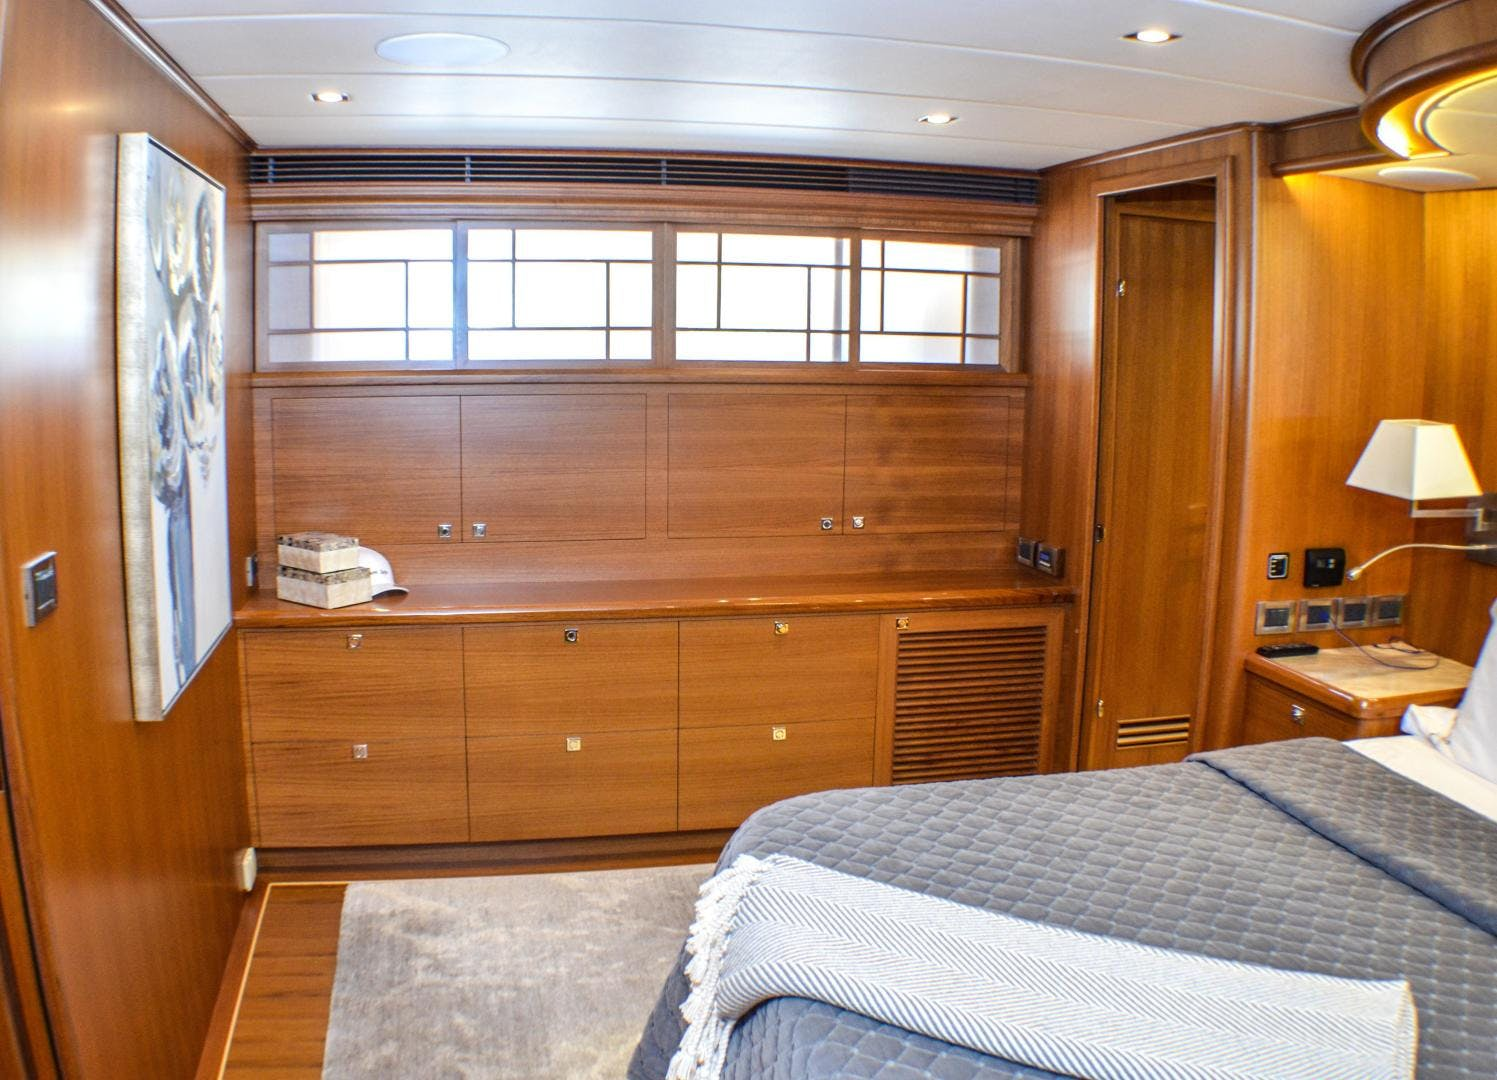 2017 Outer Reef Yachts 86' 860 DBMY Simon Says | Picture 3 of 109